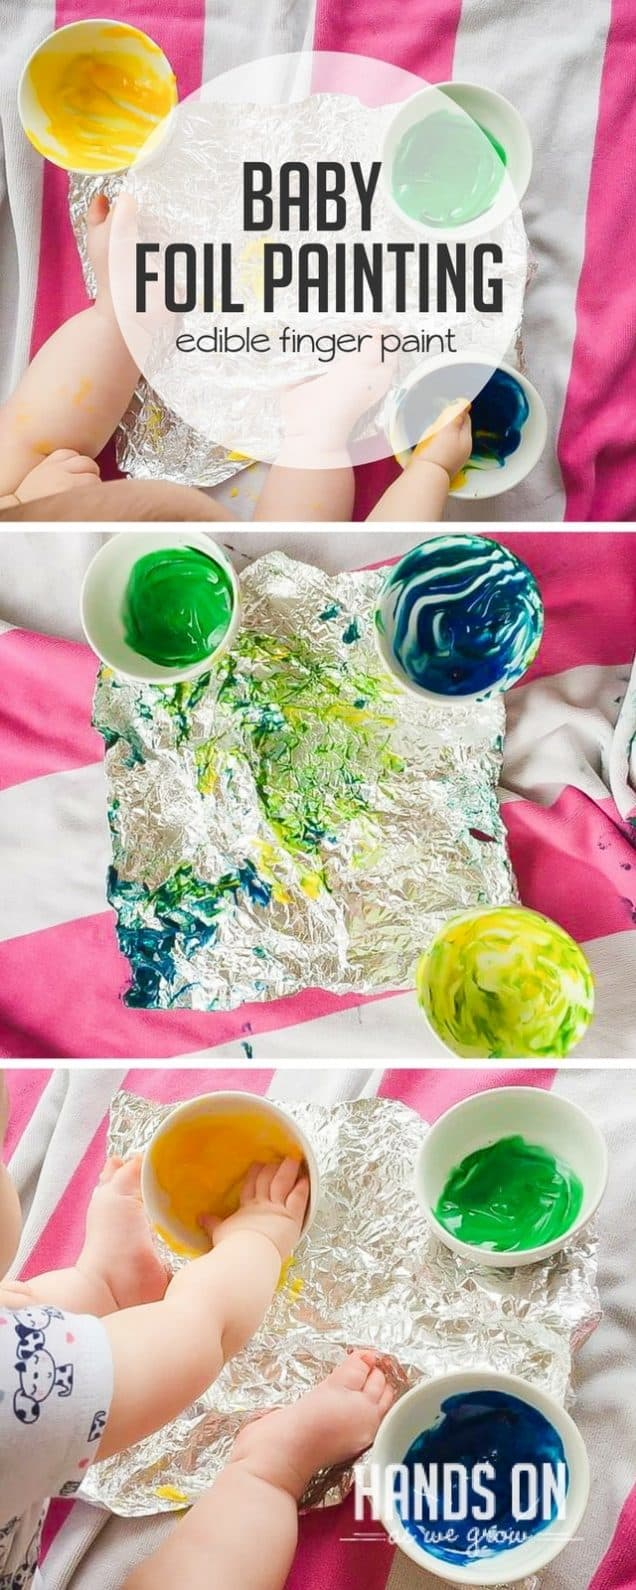 DIY super simple baby safe edible finger paint for a messy and yummy sensory foil painting activity! Make sure you grab pictures of your little artist to treasure forever.